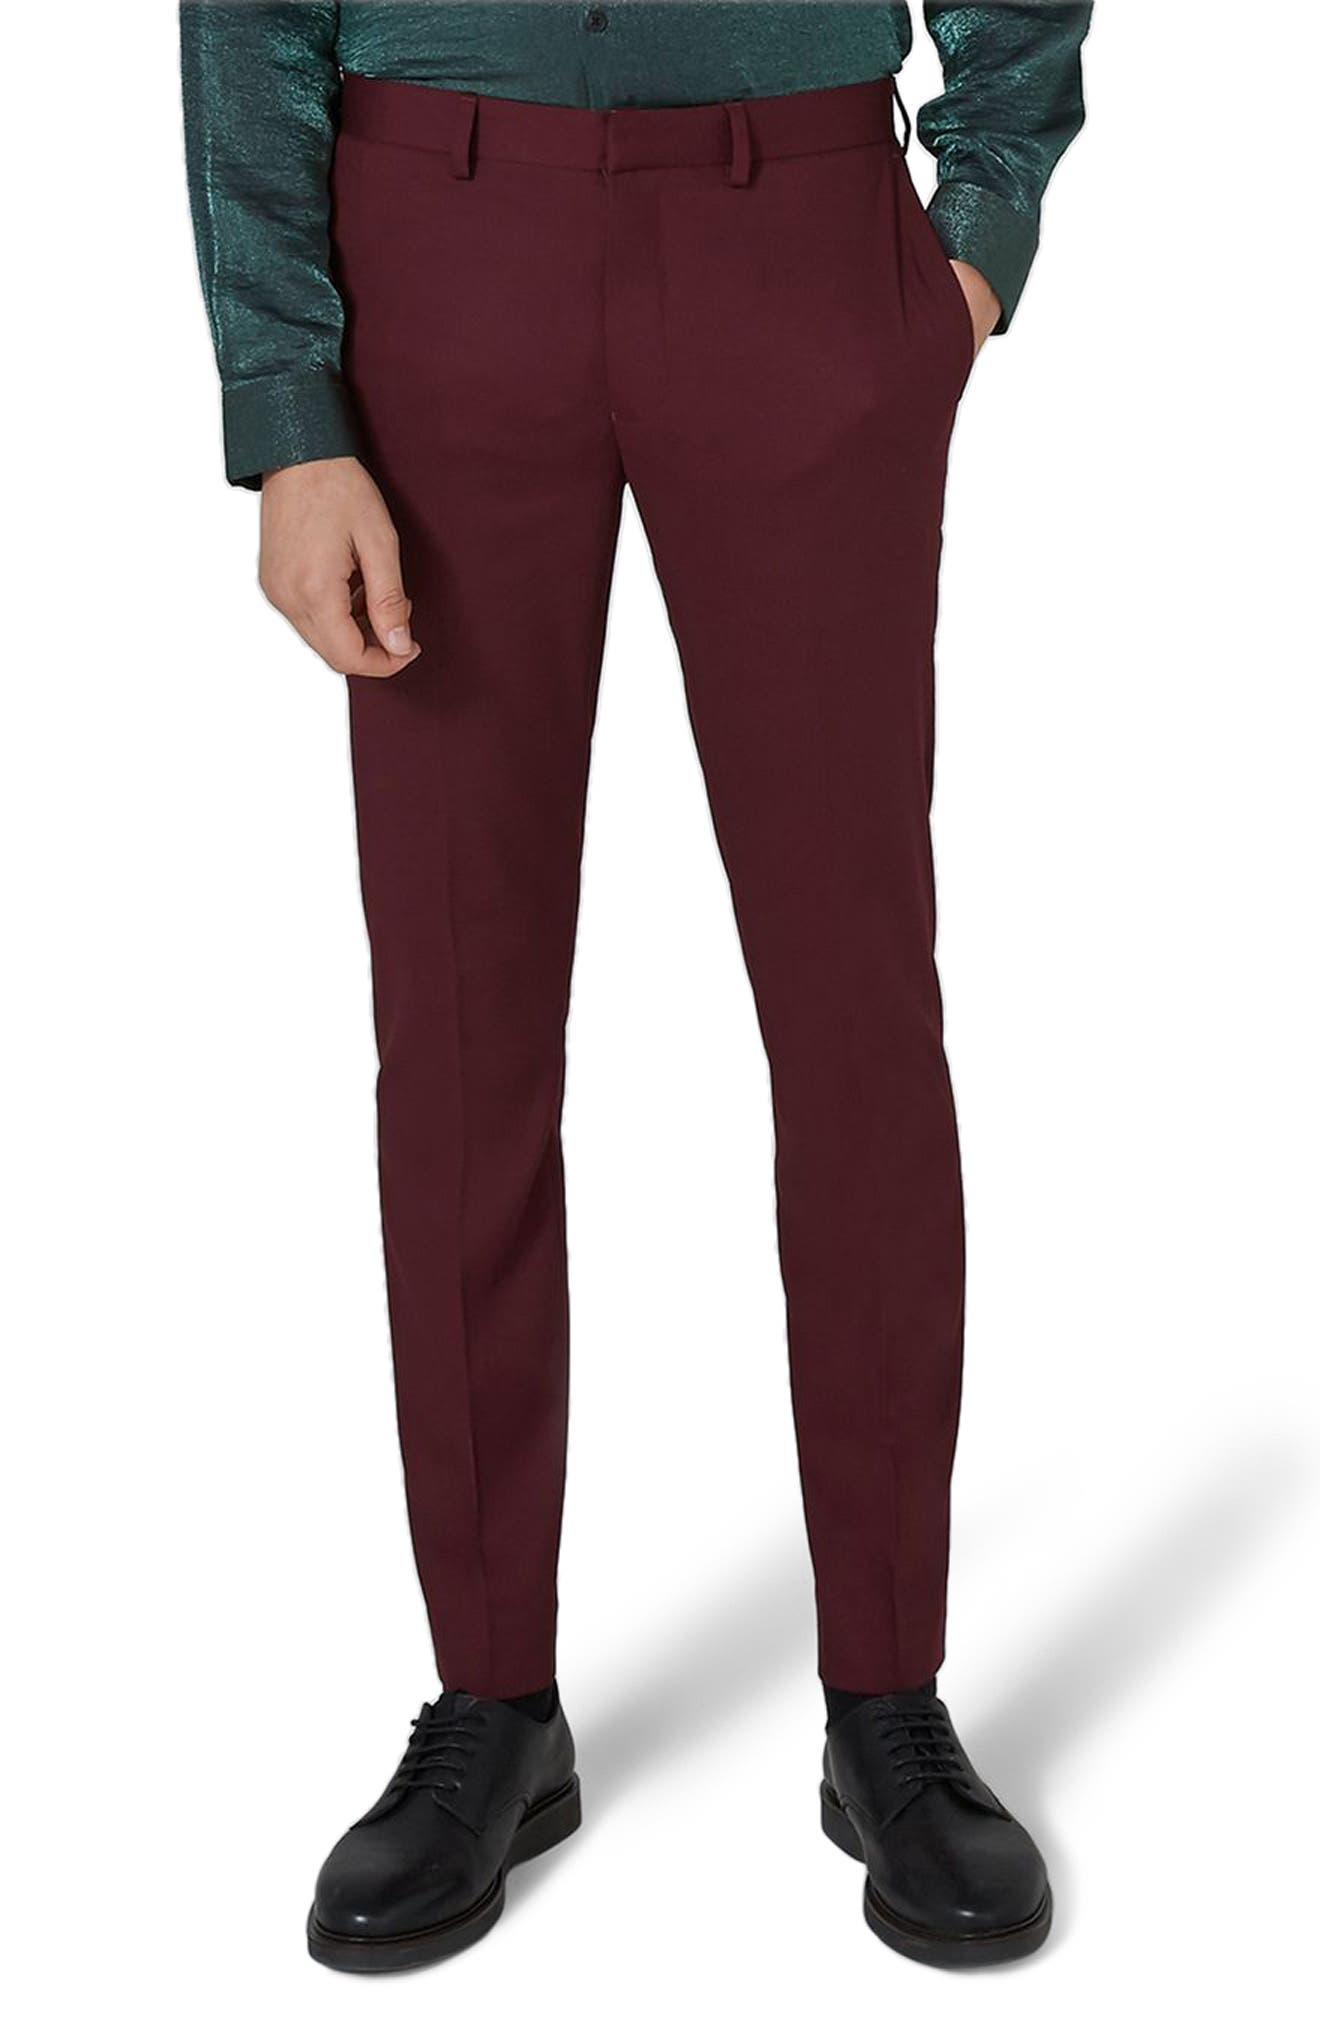 Skinny Fit Burgundy Tuxedo Trousers,                         Main,                         color, Burgundy